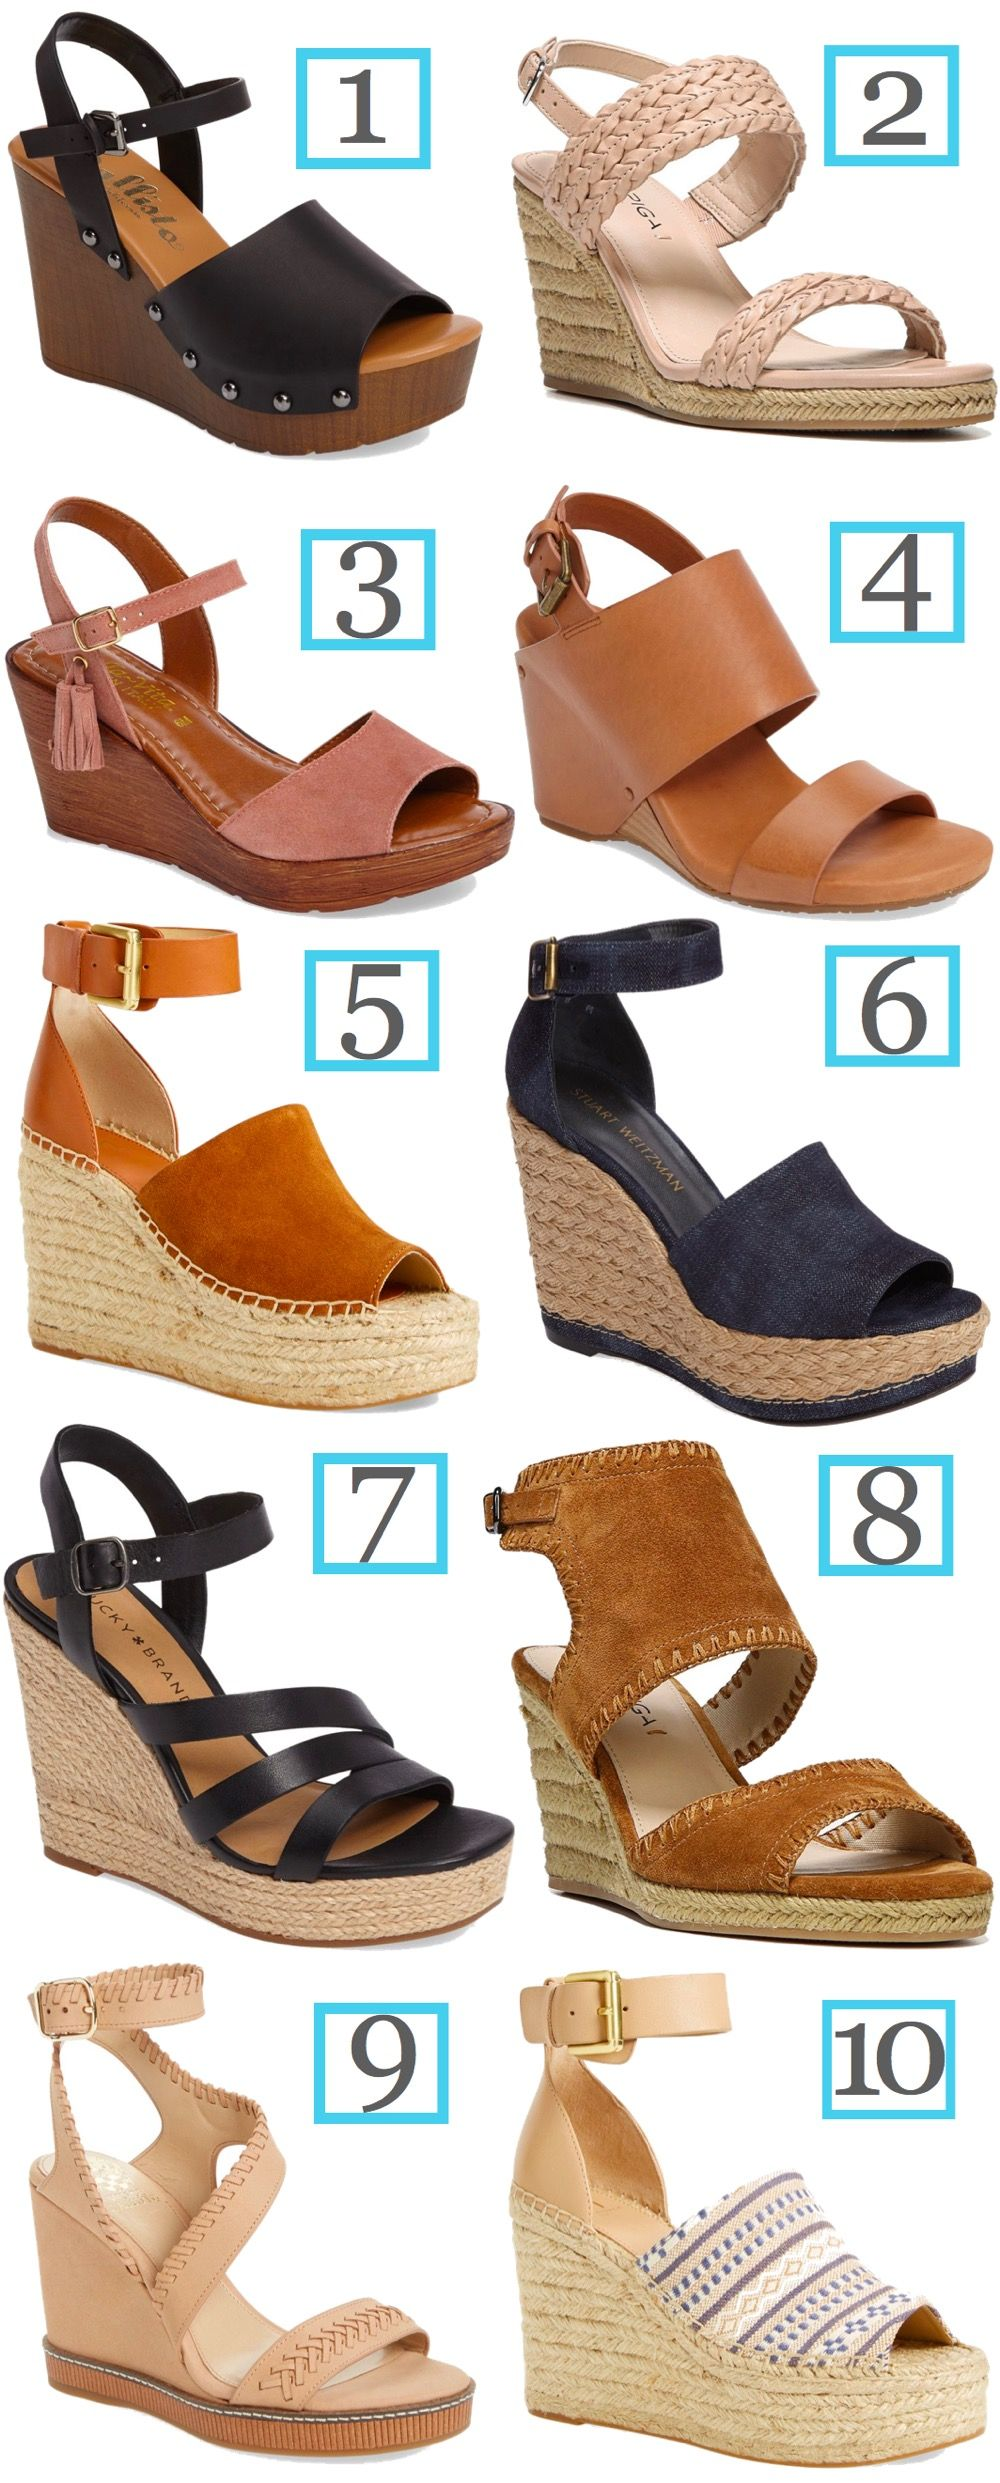 Try any one of these comfortable wedge sandals for spring and summer. Learn the tricks for getting the comfortable pairs and see all the chic options.